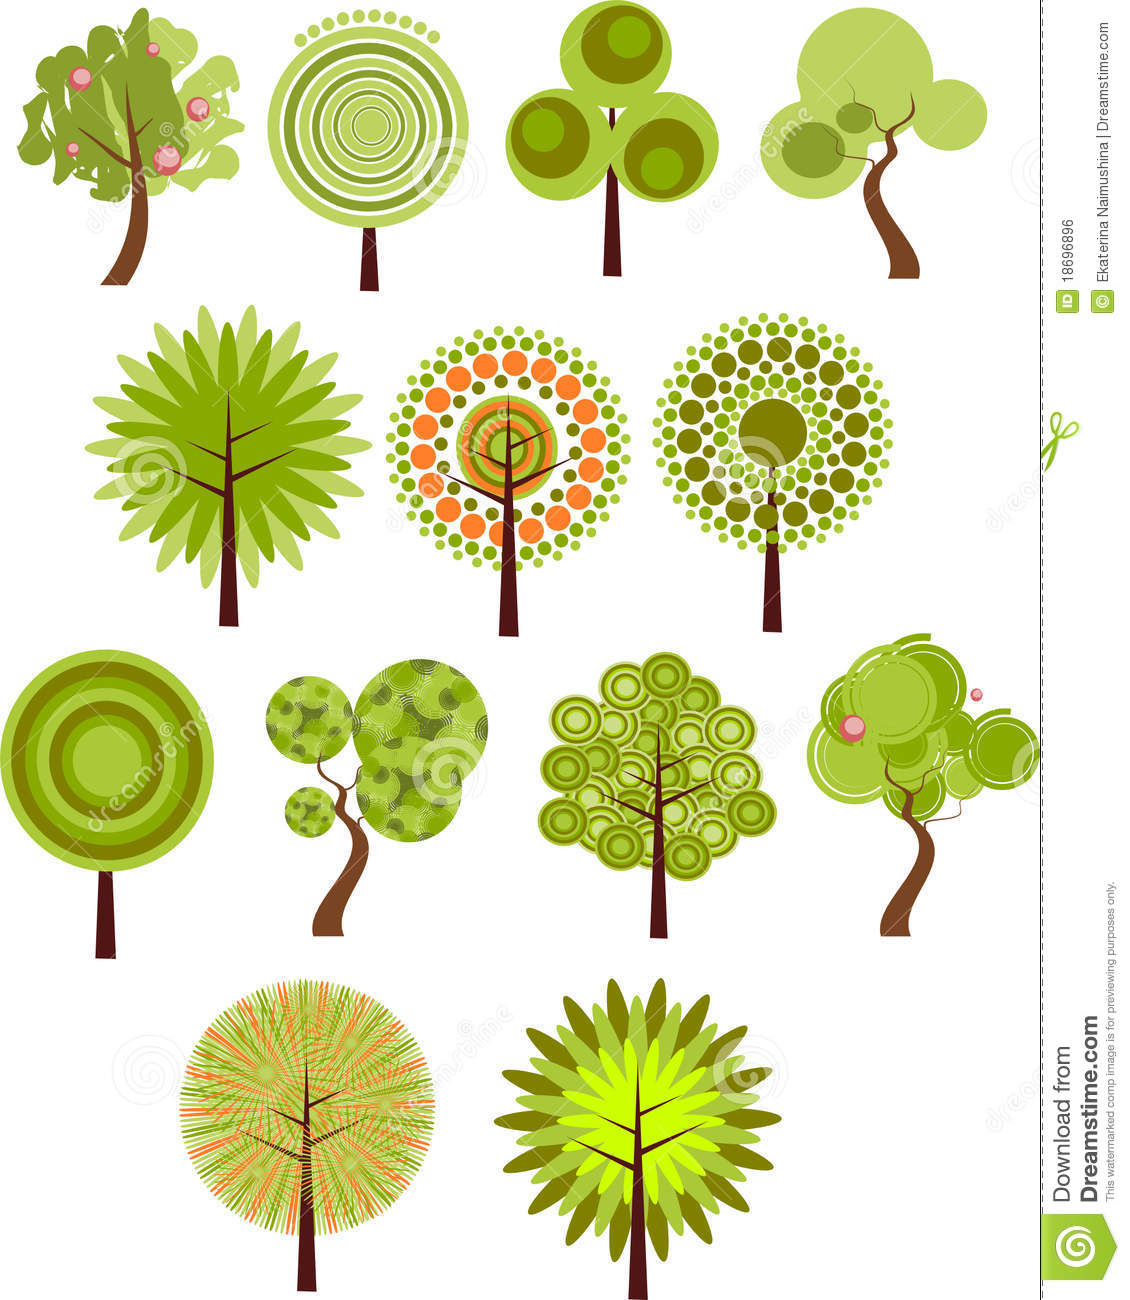 Collection Of Tree Clip-art Royalty Free Stock Image - Image: 18696896